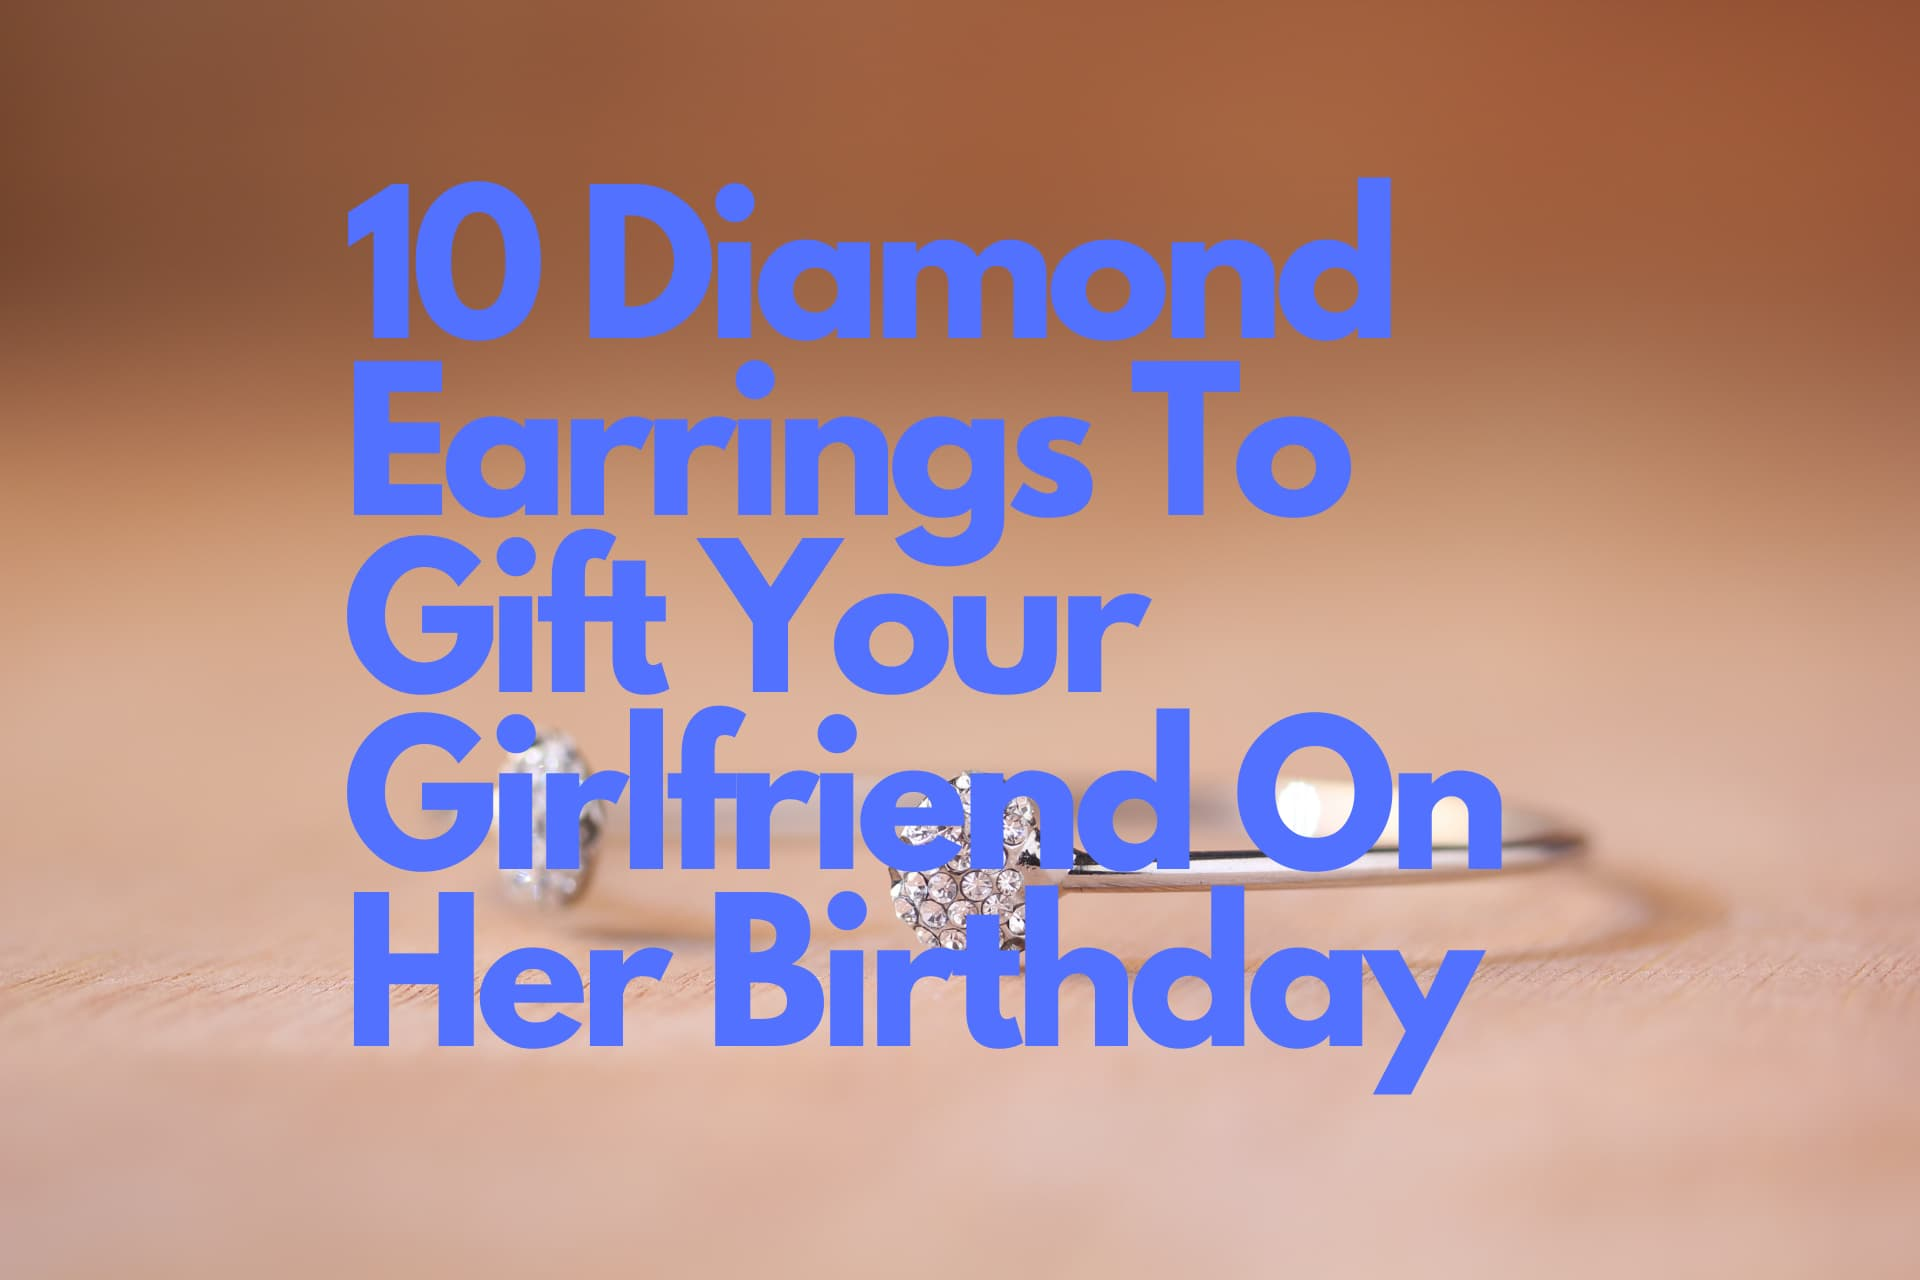 10 Diamond Earrings To Gift Your Girlfriend On Her Birthday